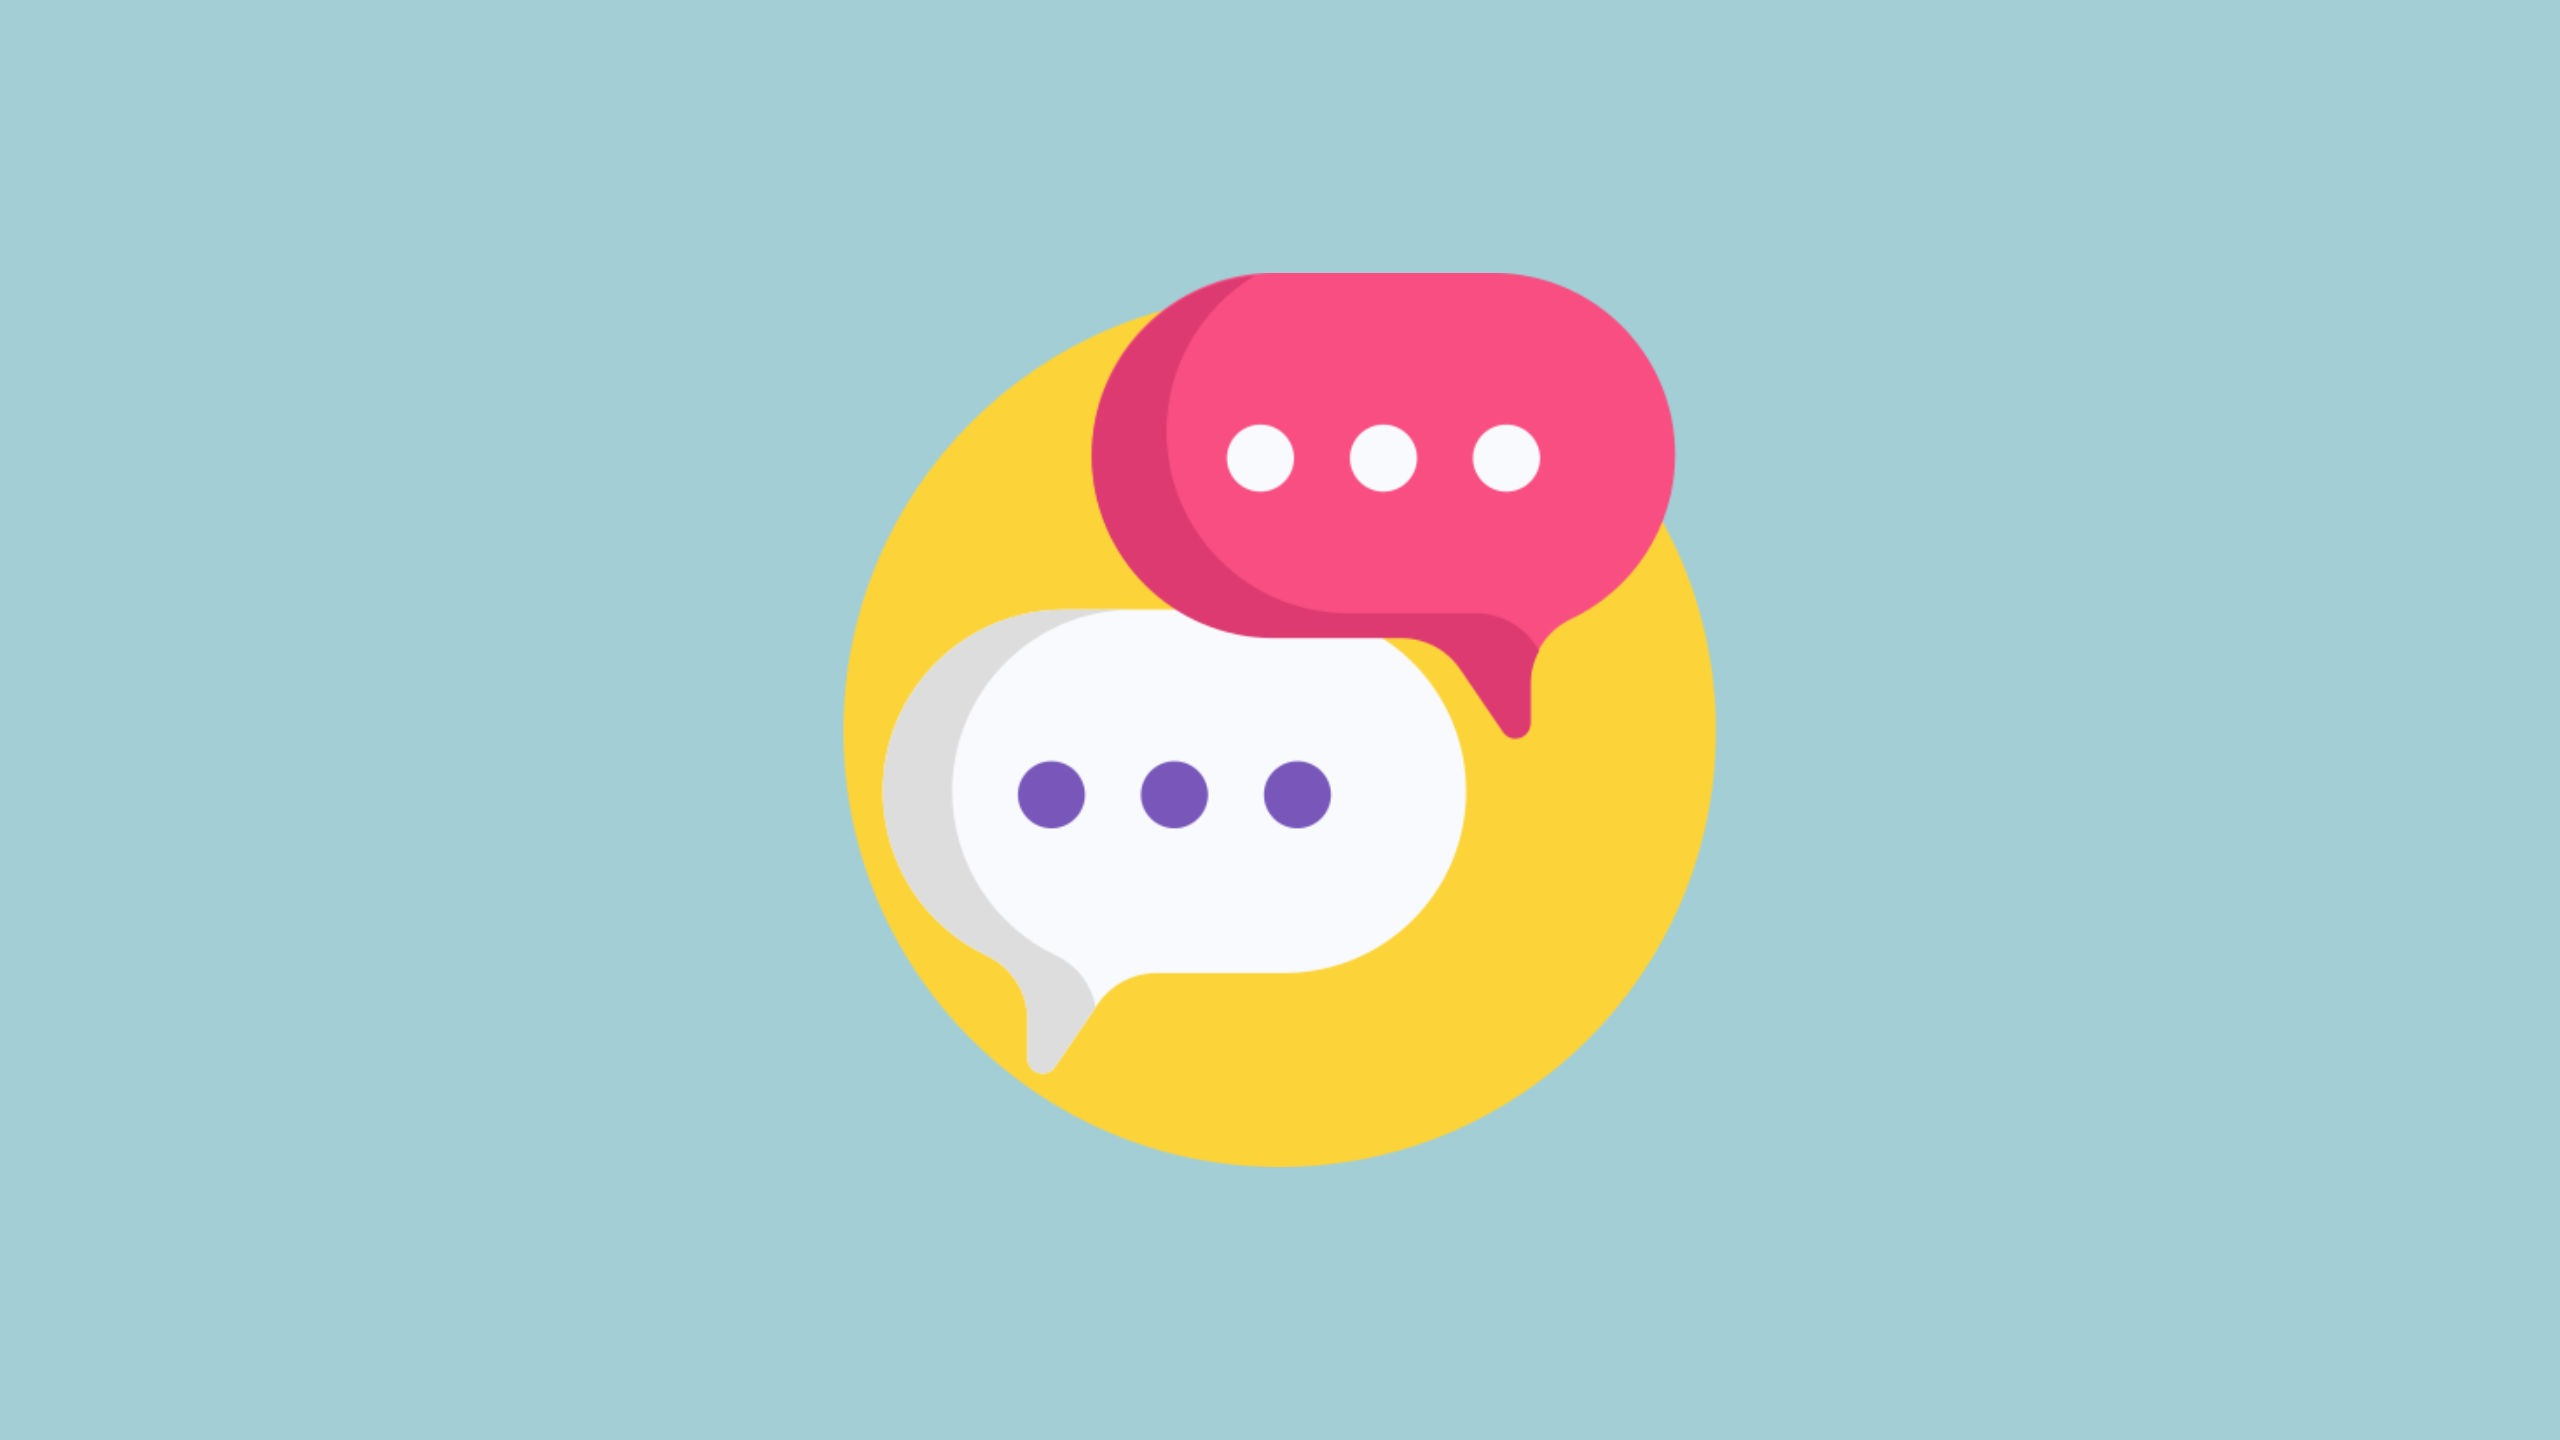 A white speech bubble and pink speech bubble sit in a yellow circle sit on a blue background to symbolise the top 5 IELTS speaking tips